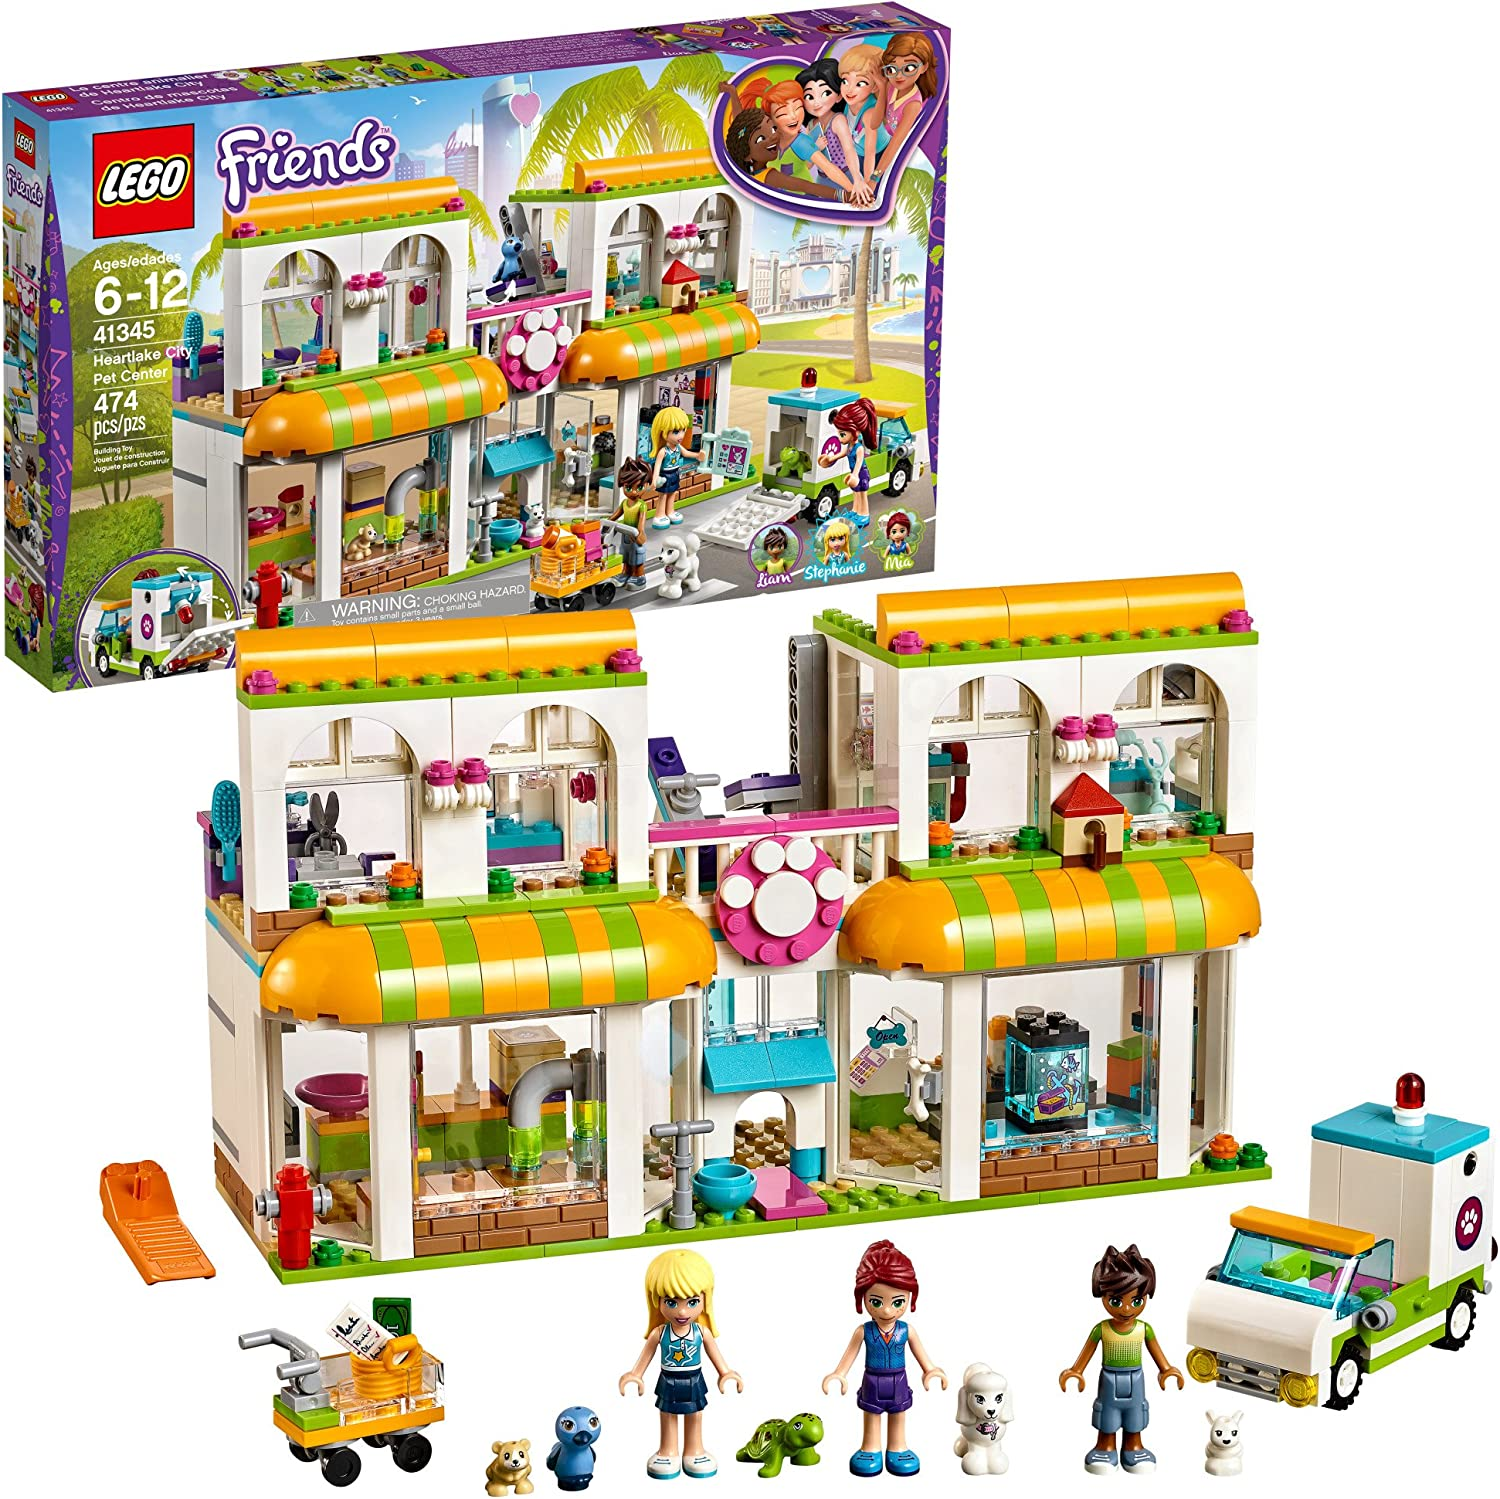 LEGO Friends Heartlake City Pet Center 41345 Building Kit (474 Pieces)